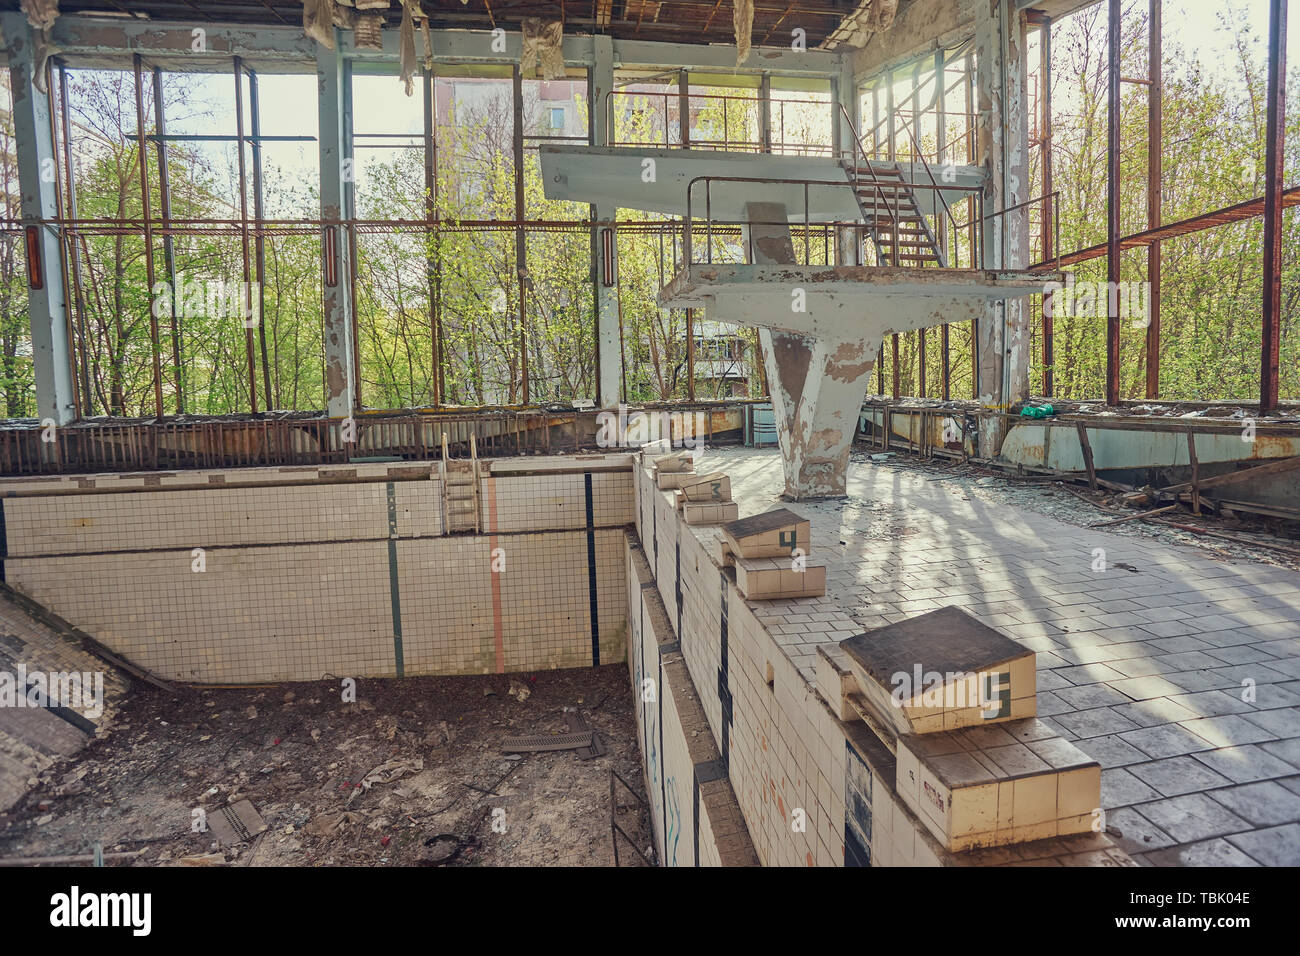 Former swimming pool in Pripyat, the ghost town in the Chernobyl Exclusion Zone which was established after the nuclear disaster - Stock Image